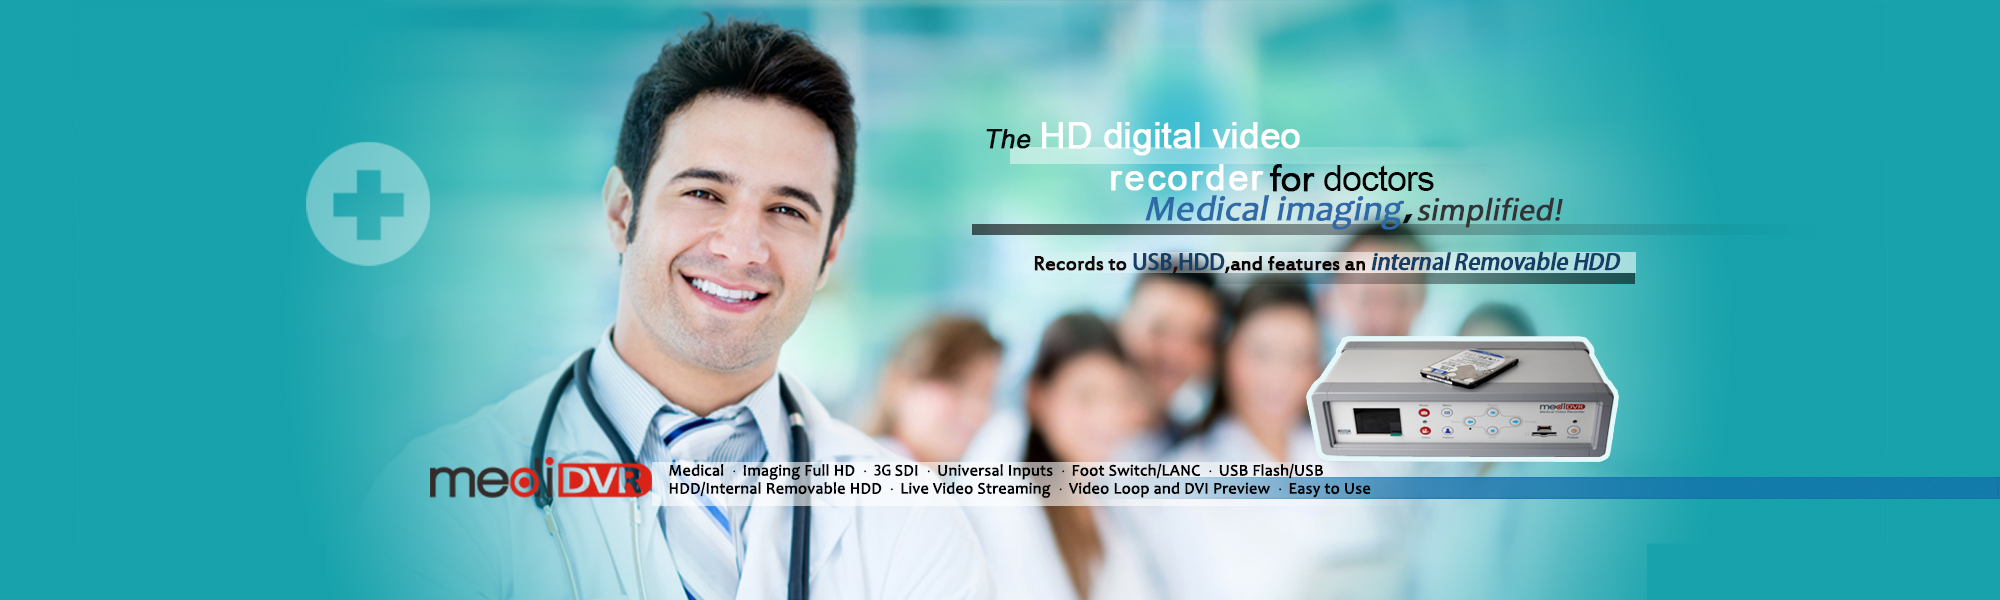 HD Medical Video Recorder